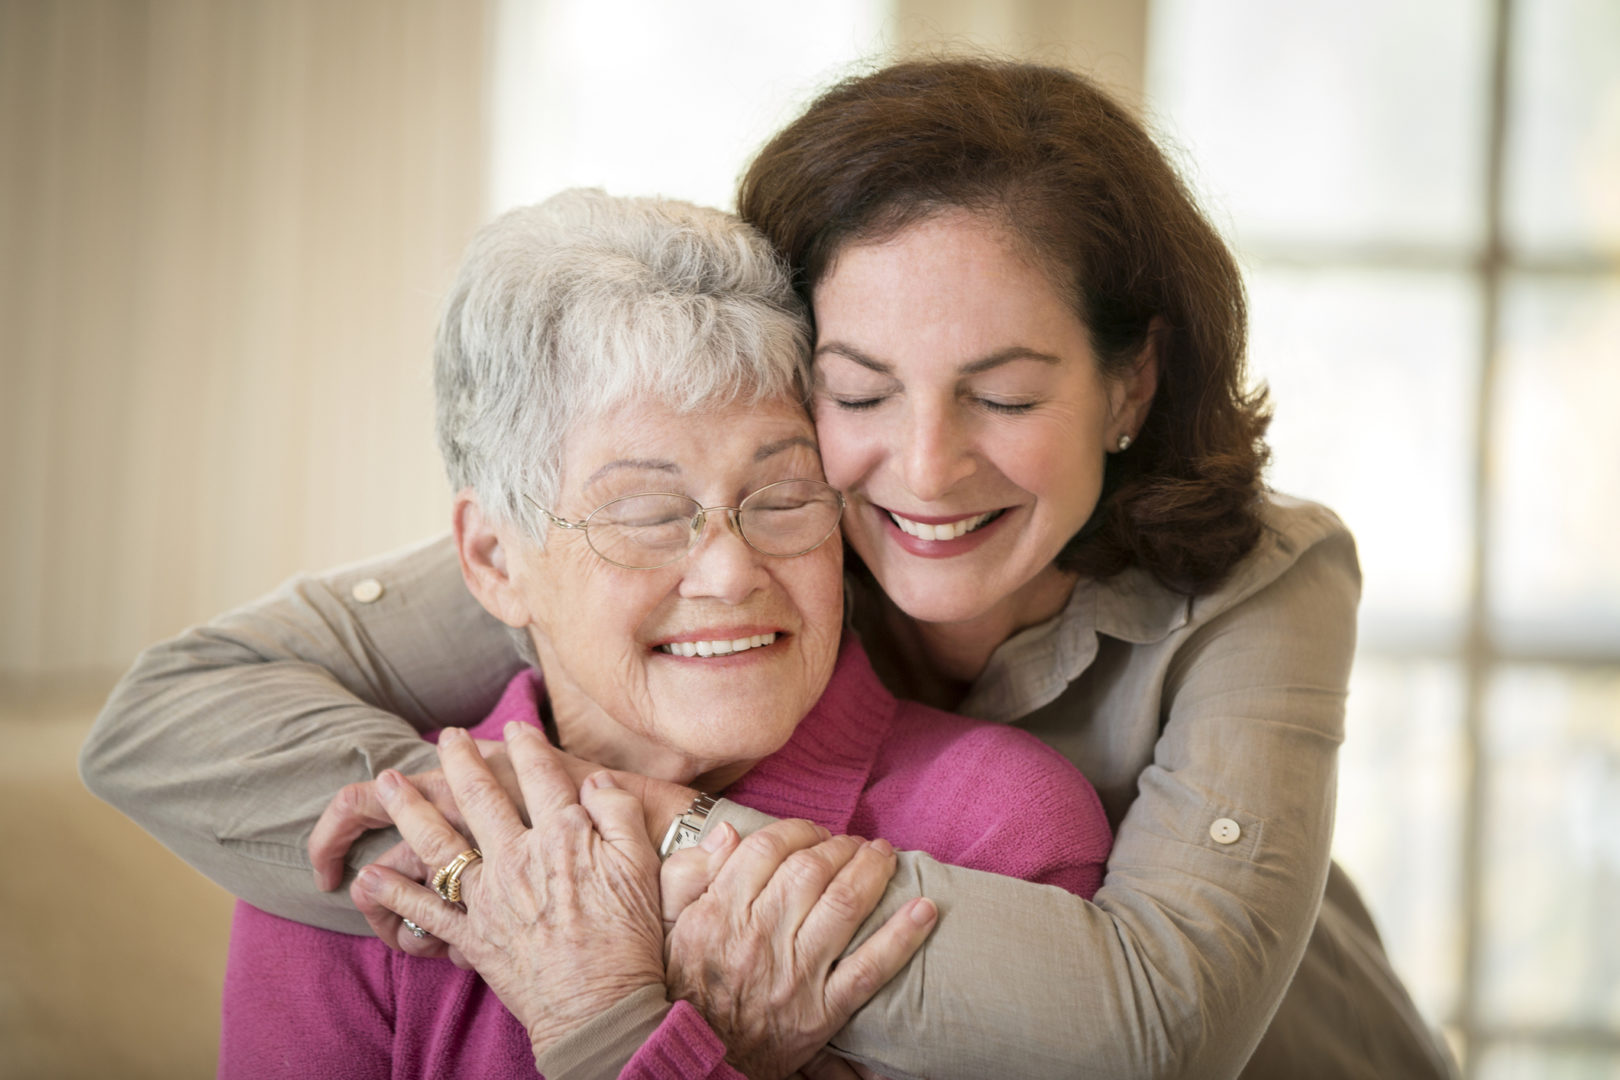 How to be a strong advocate for your elderly parents